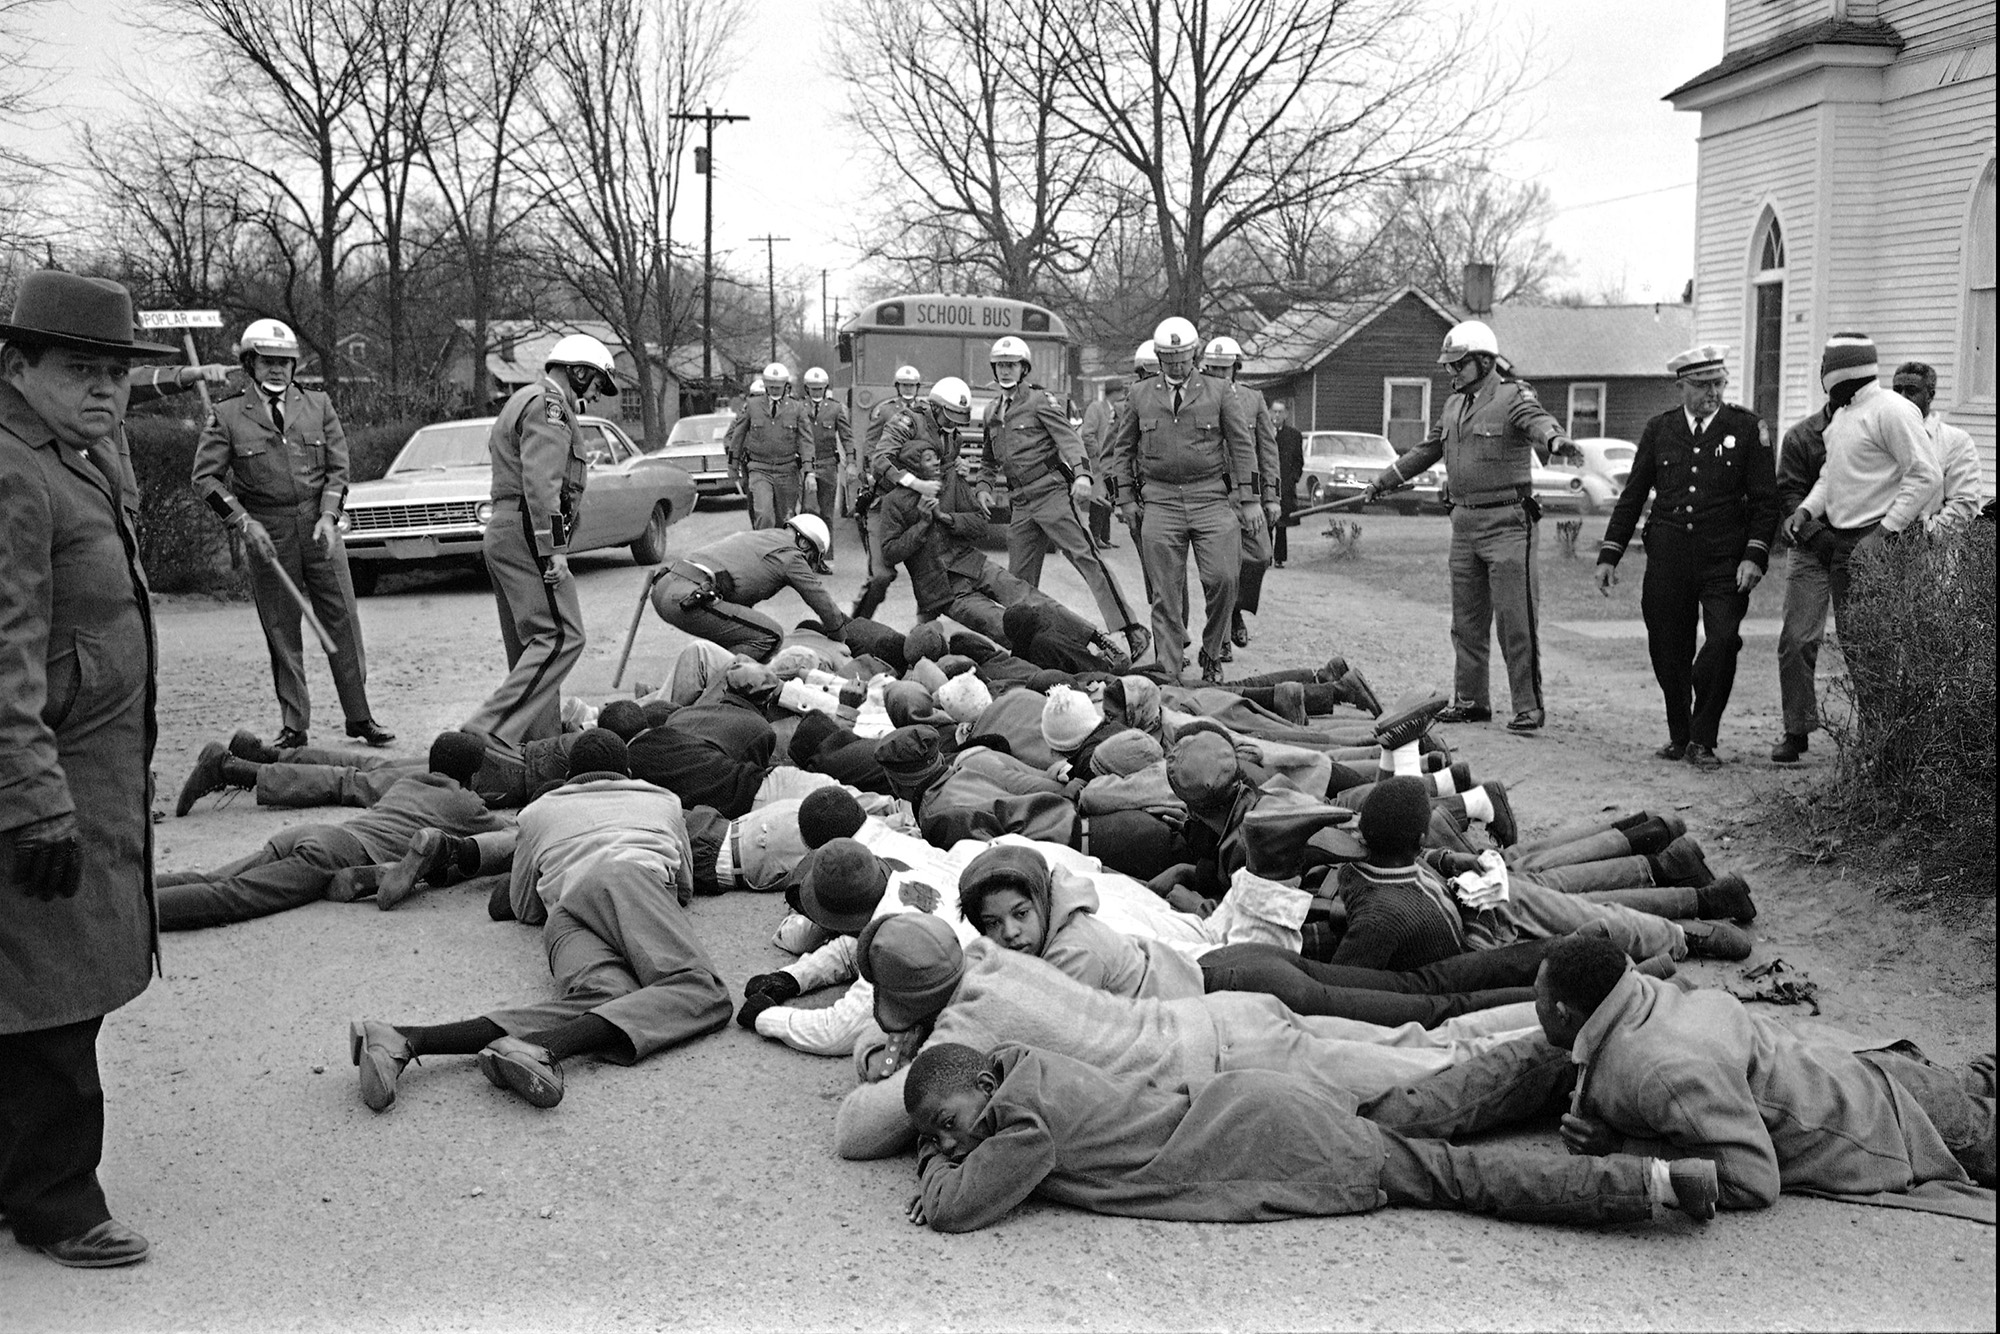 Georgia State Troopers move in on a group of demonstrators who sprawled in front of school buses again at Social Circle, Georgia, Feb. 15, 1968. The blacks were protesting school conditions they term deplorable. About 35 demonstrators were put into a prison camp bus. It was the second day of such demonstrations. КРЕДИТ